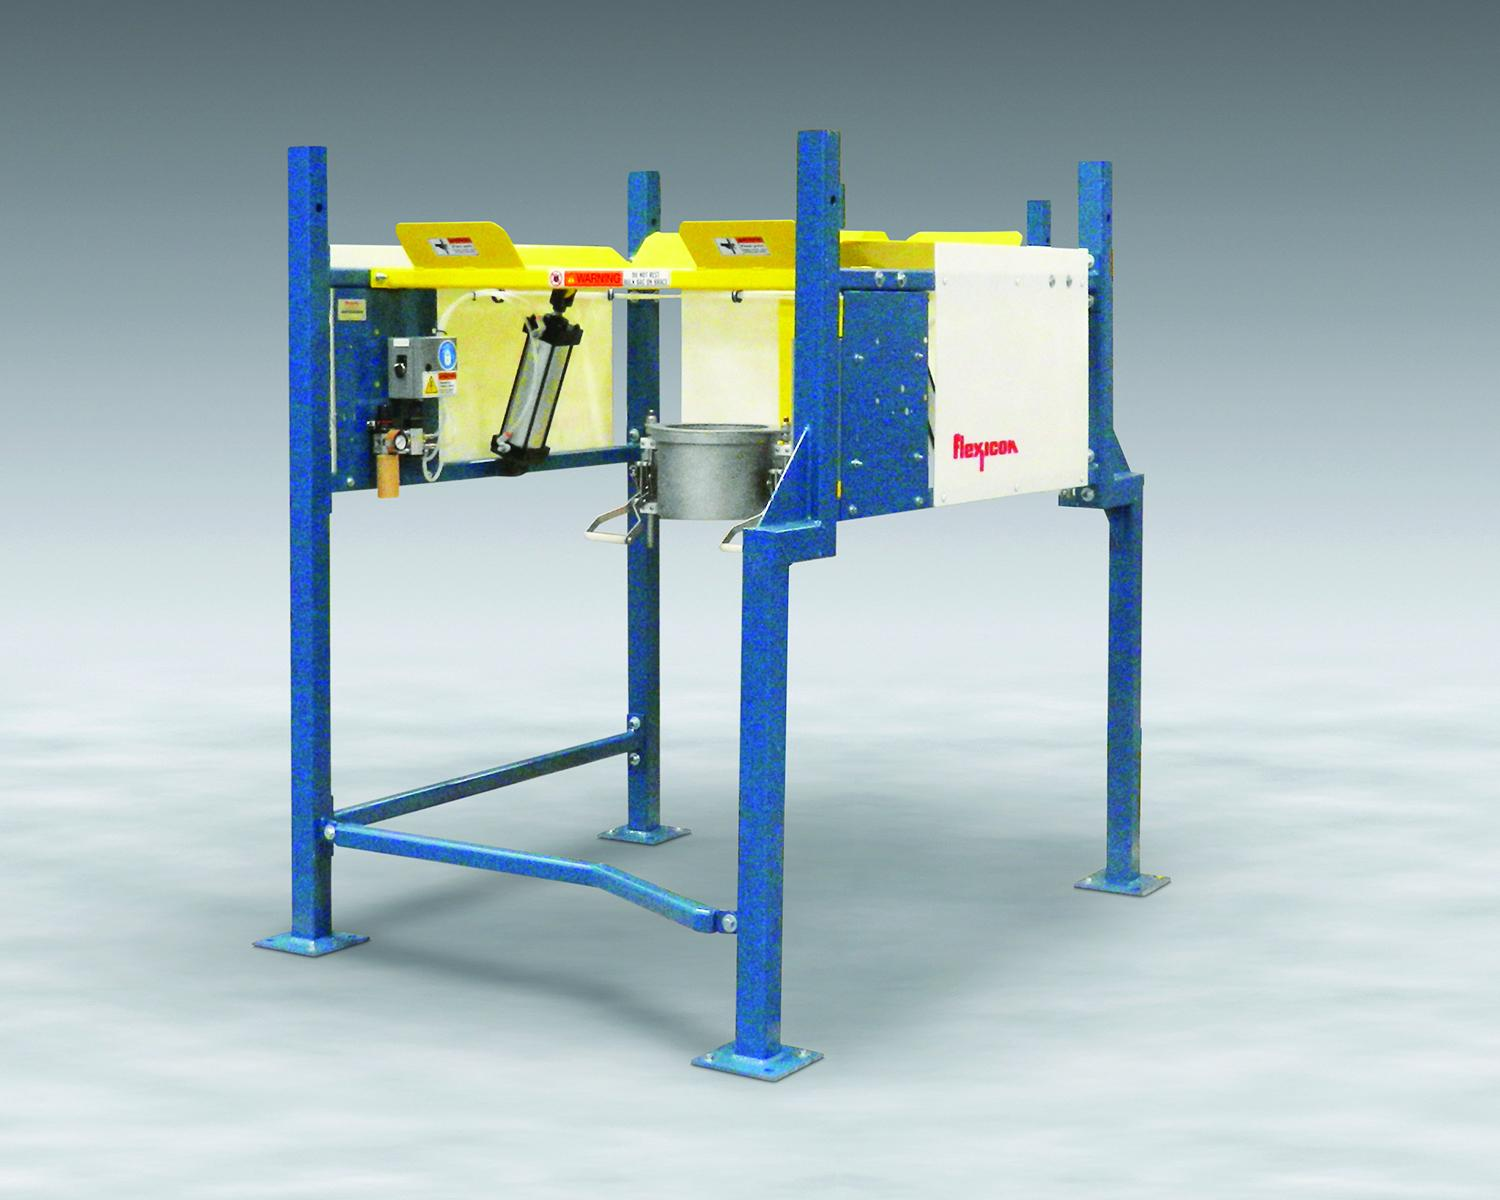 The variable height and offsets of low profile BULK-OUT Half-Frame Dischargers allow dust-free evacuation of bulk bags in restricted spaces at low cost